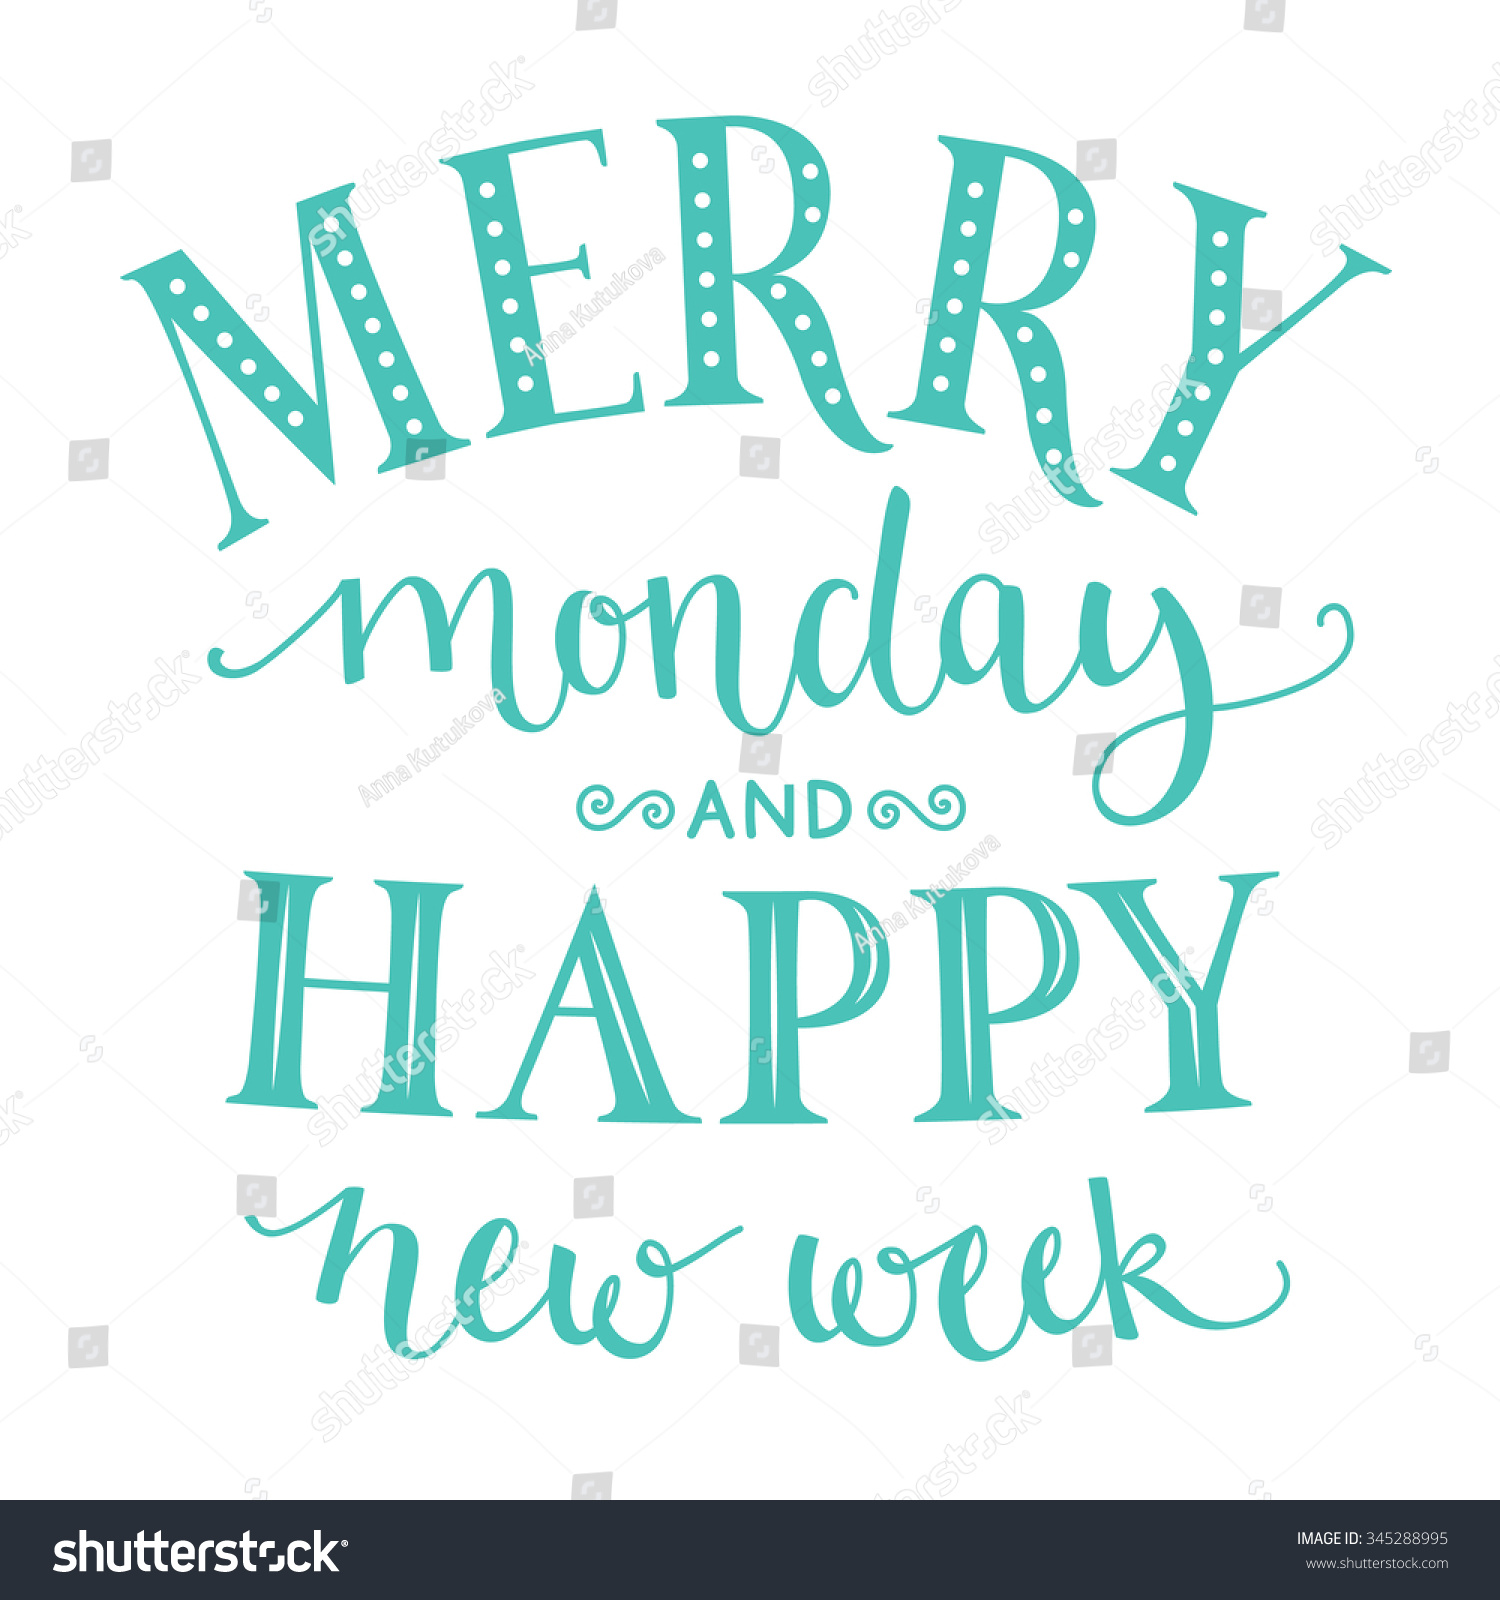 Happy Week Quotes Inspirational: Merry Monday And Happy New Week. Inspirational Quote About